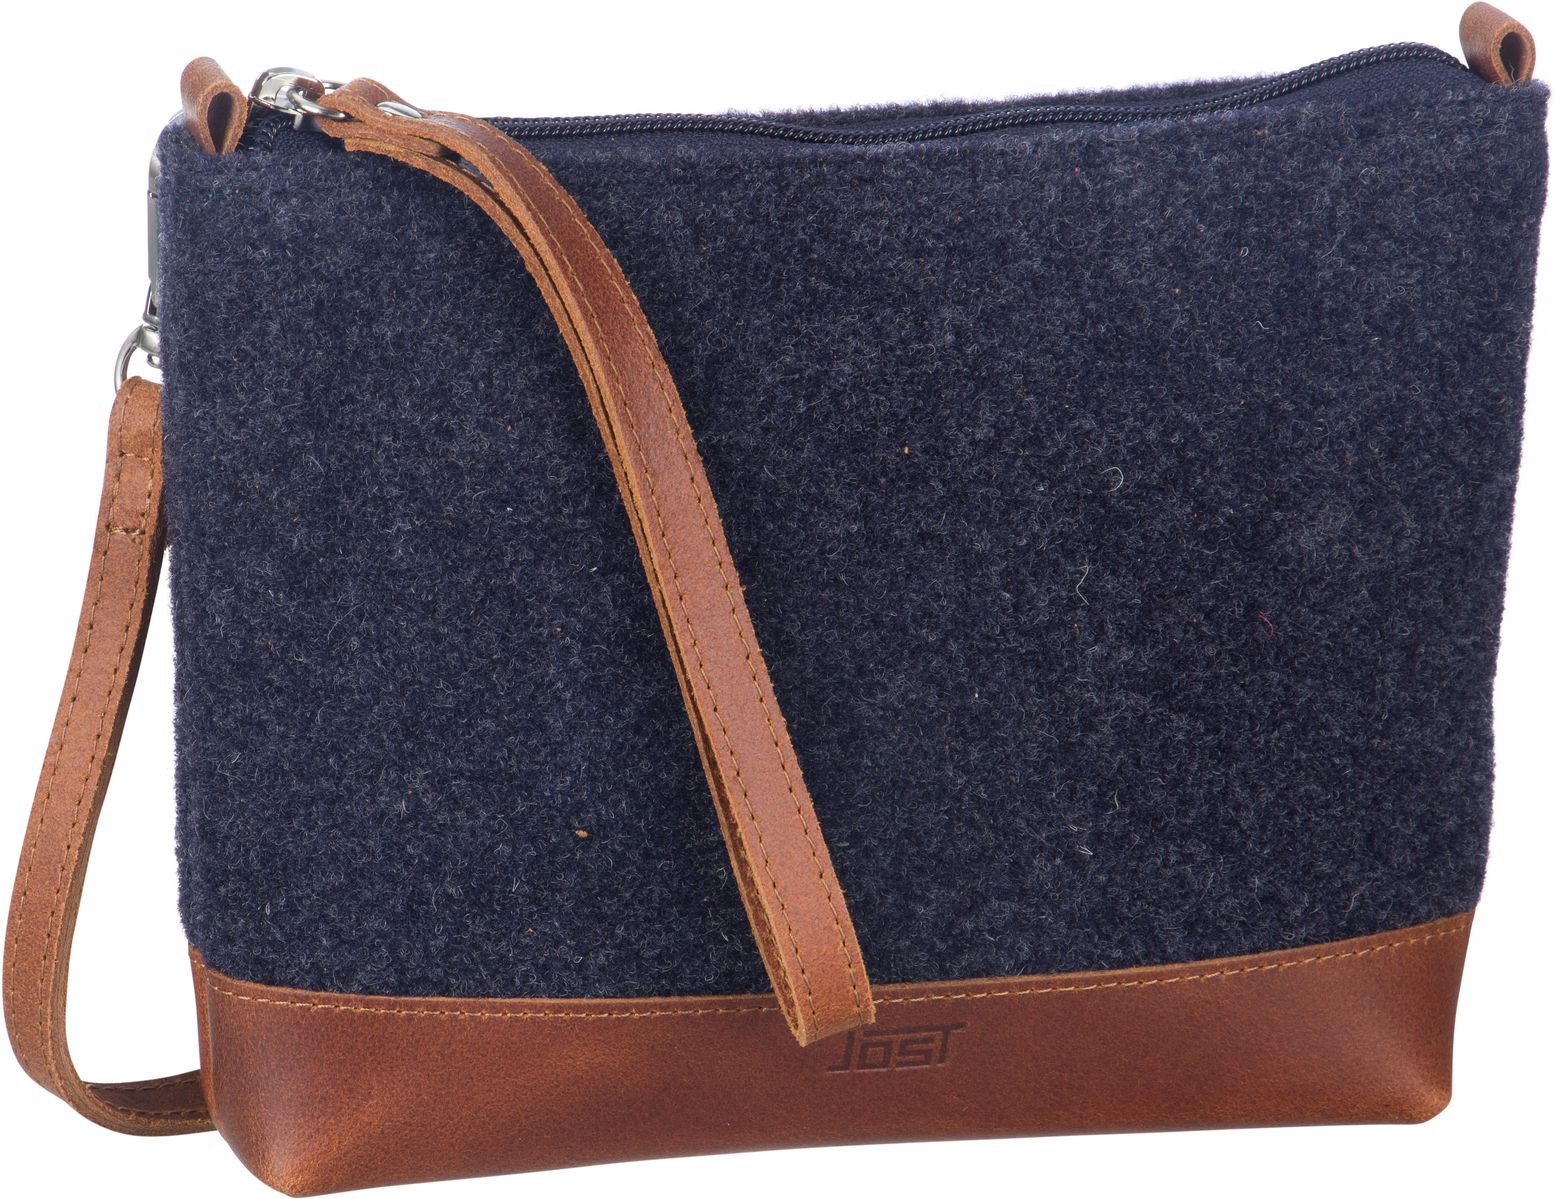 Umhängetasche Farum 3029 Belt/Shoulder Bag Navy